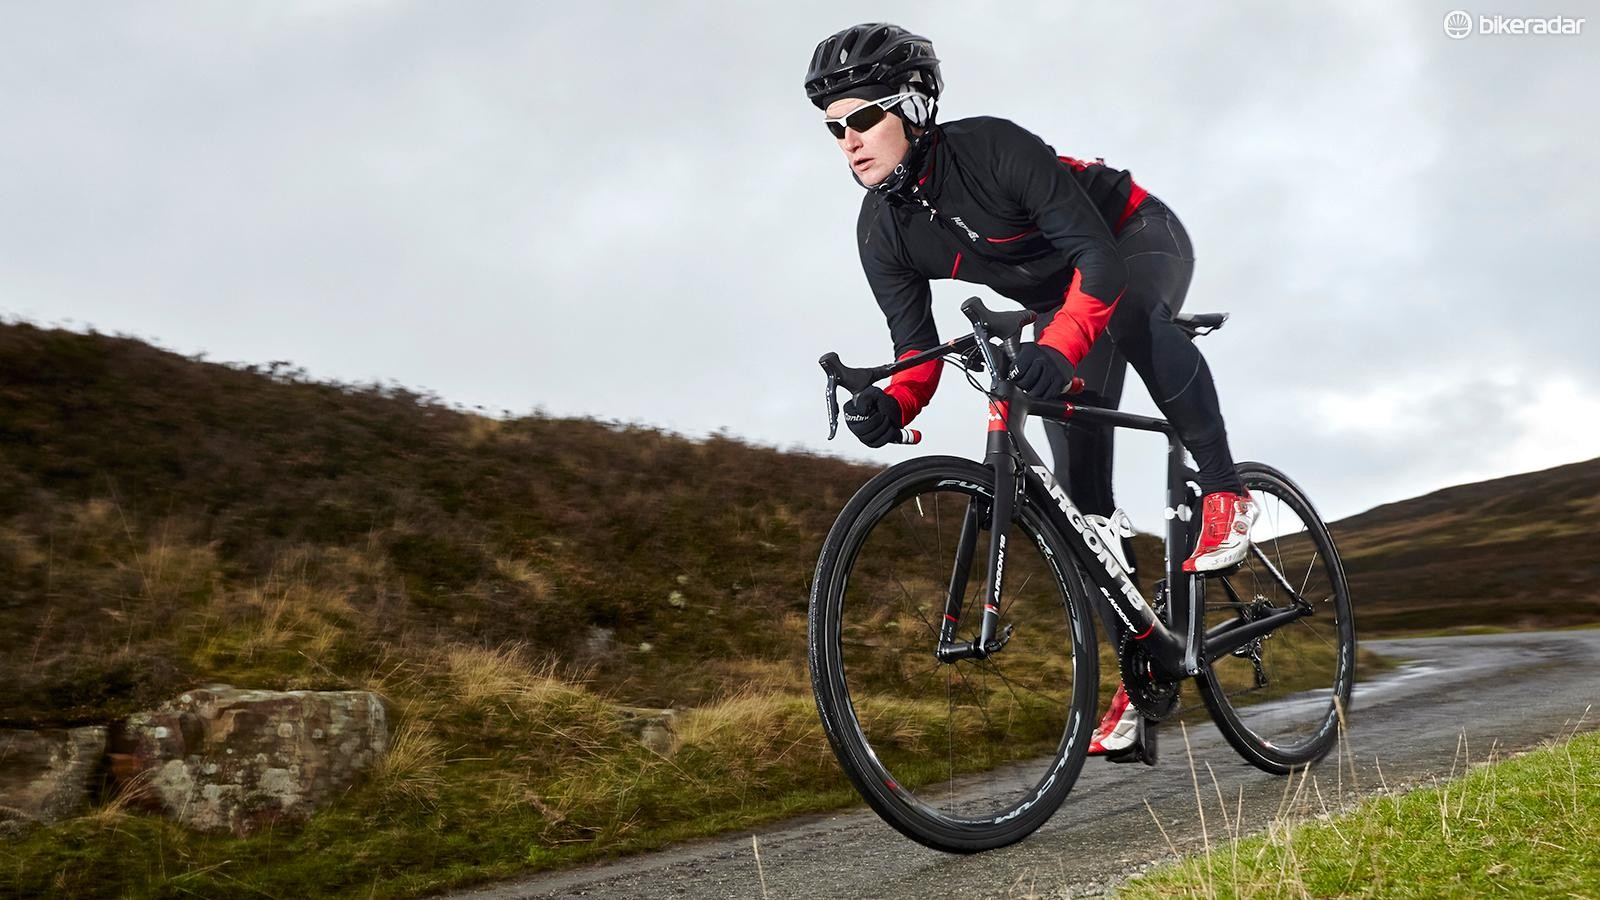 Argon 18's Nitrogen Pro oozes pro-level pedigree